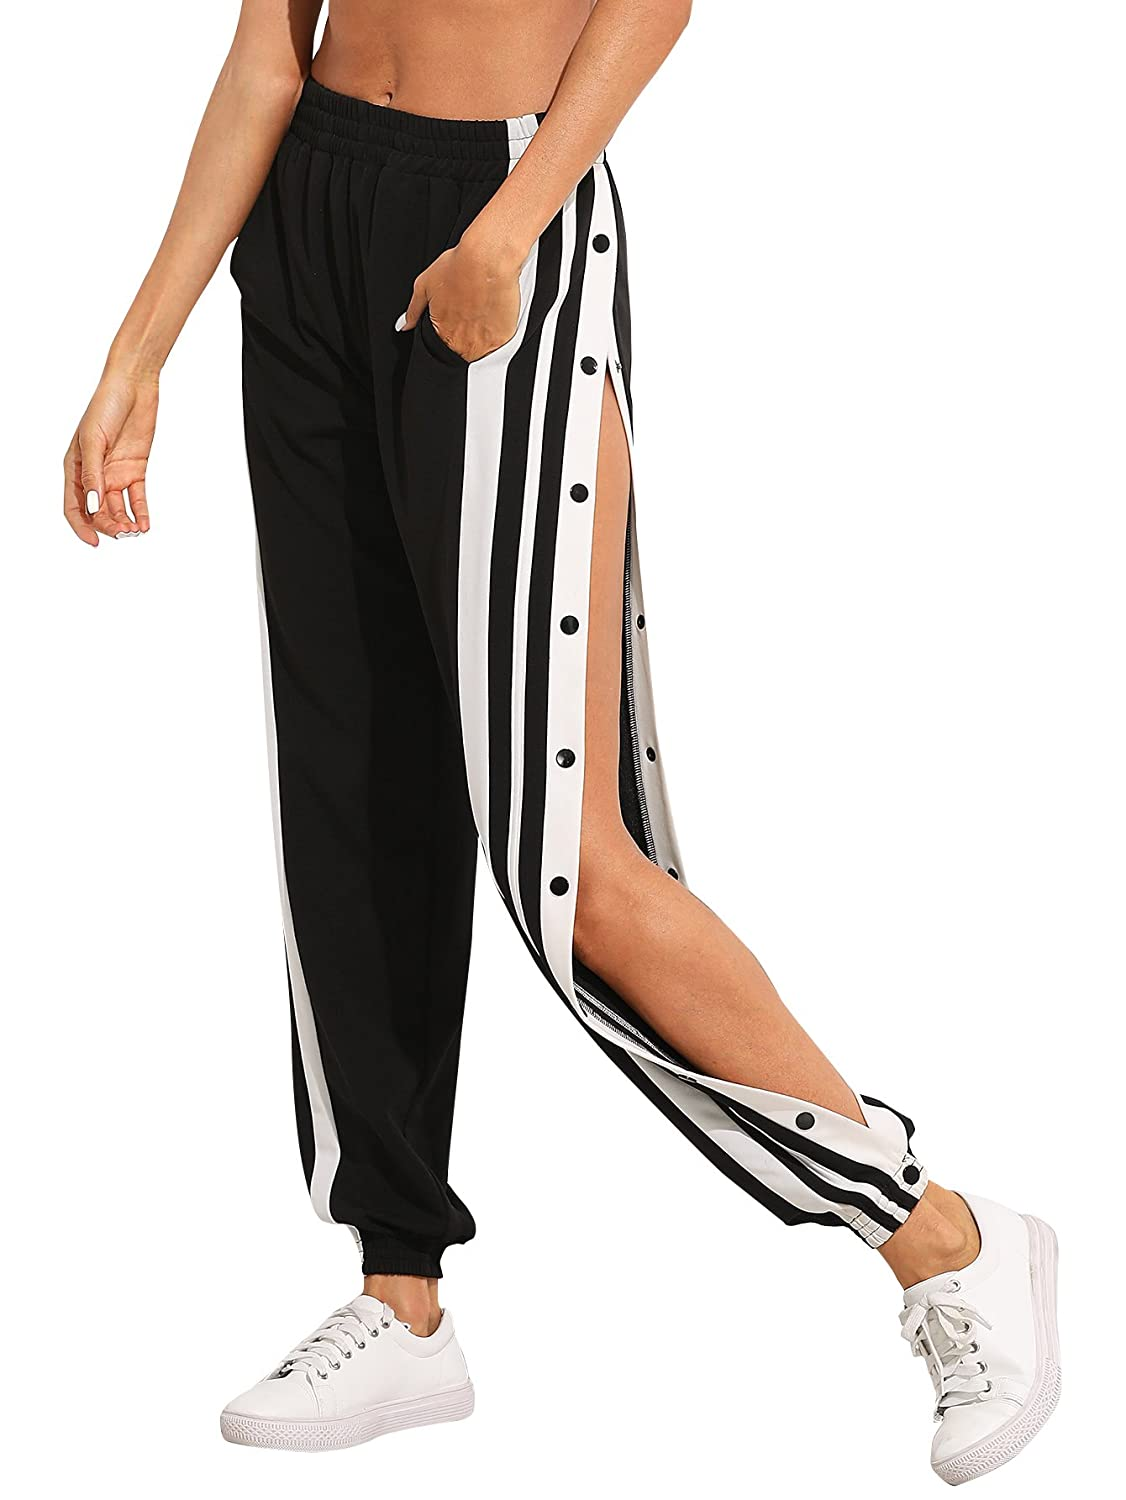 bea144ebf2f SOLY HUX Women s Sporty High Split Side Striped Joggers Snap Button Track  Pants at Amazon Women s Clothing store